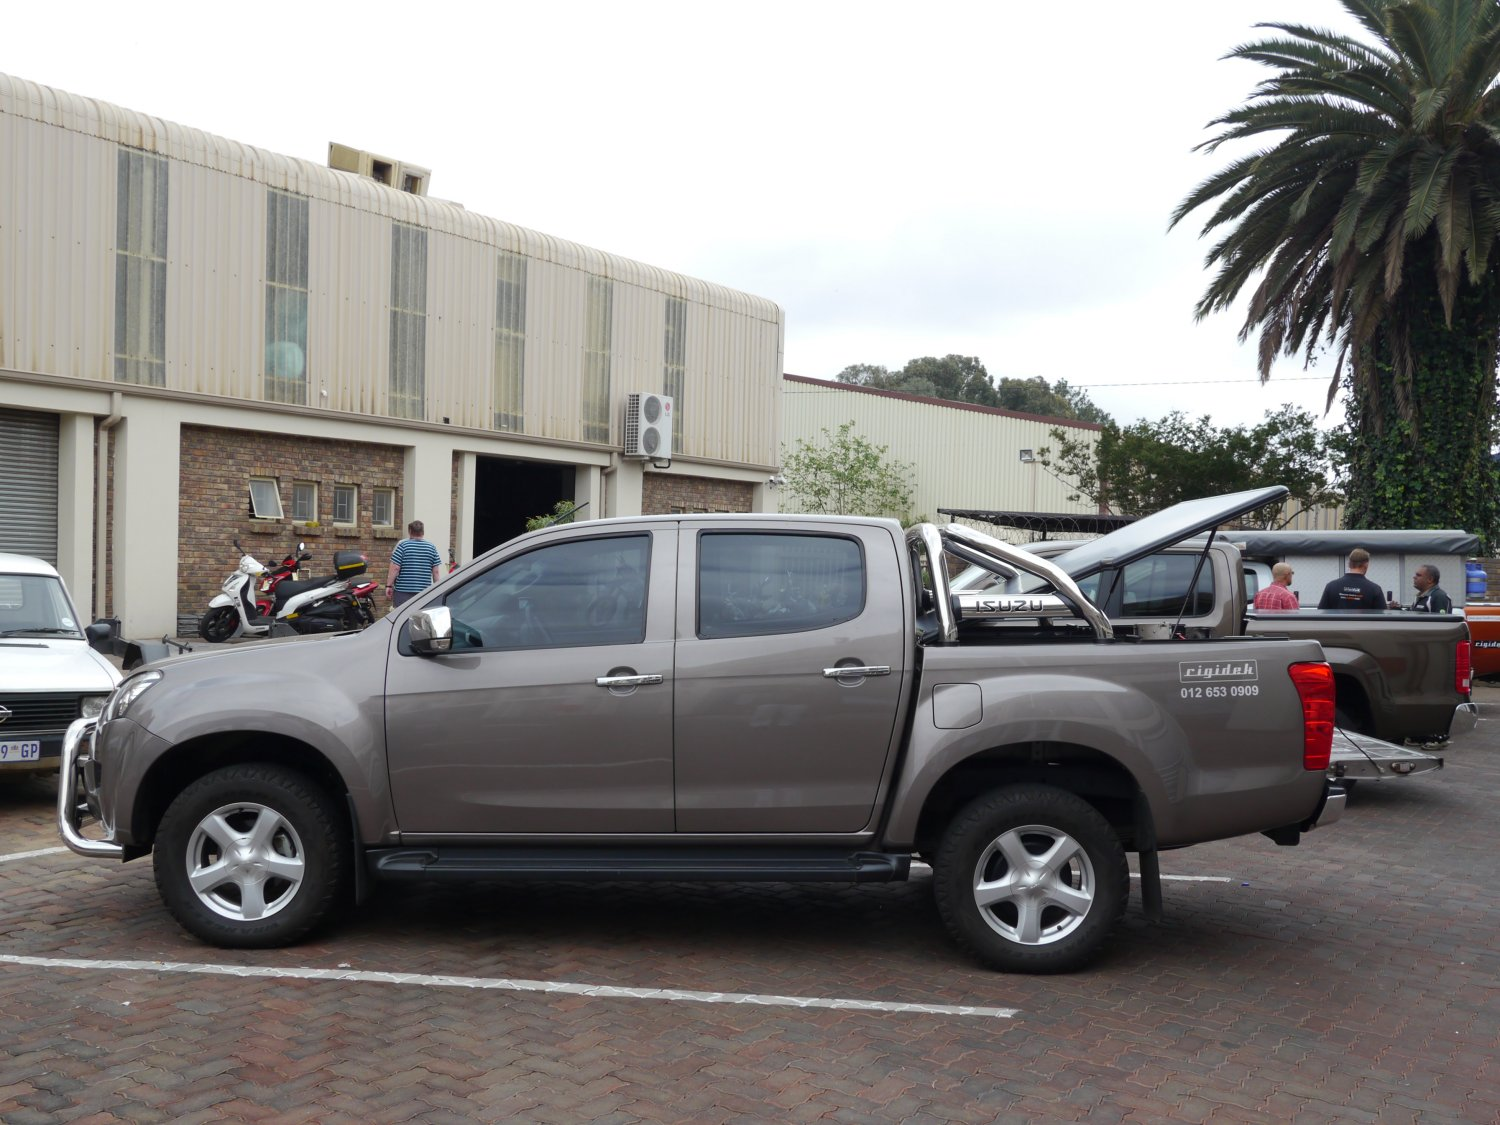 Rigidek Laderaumabdeckung - Isuzu D-Max - Double Cab mit Sports Bar 1000.JPG